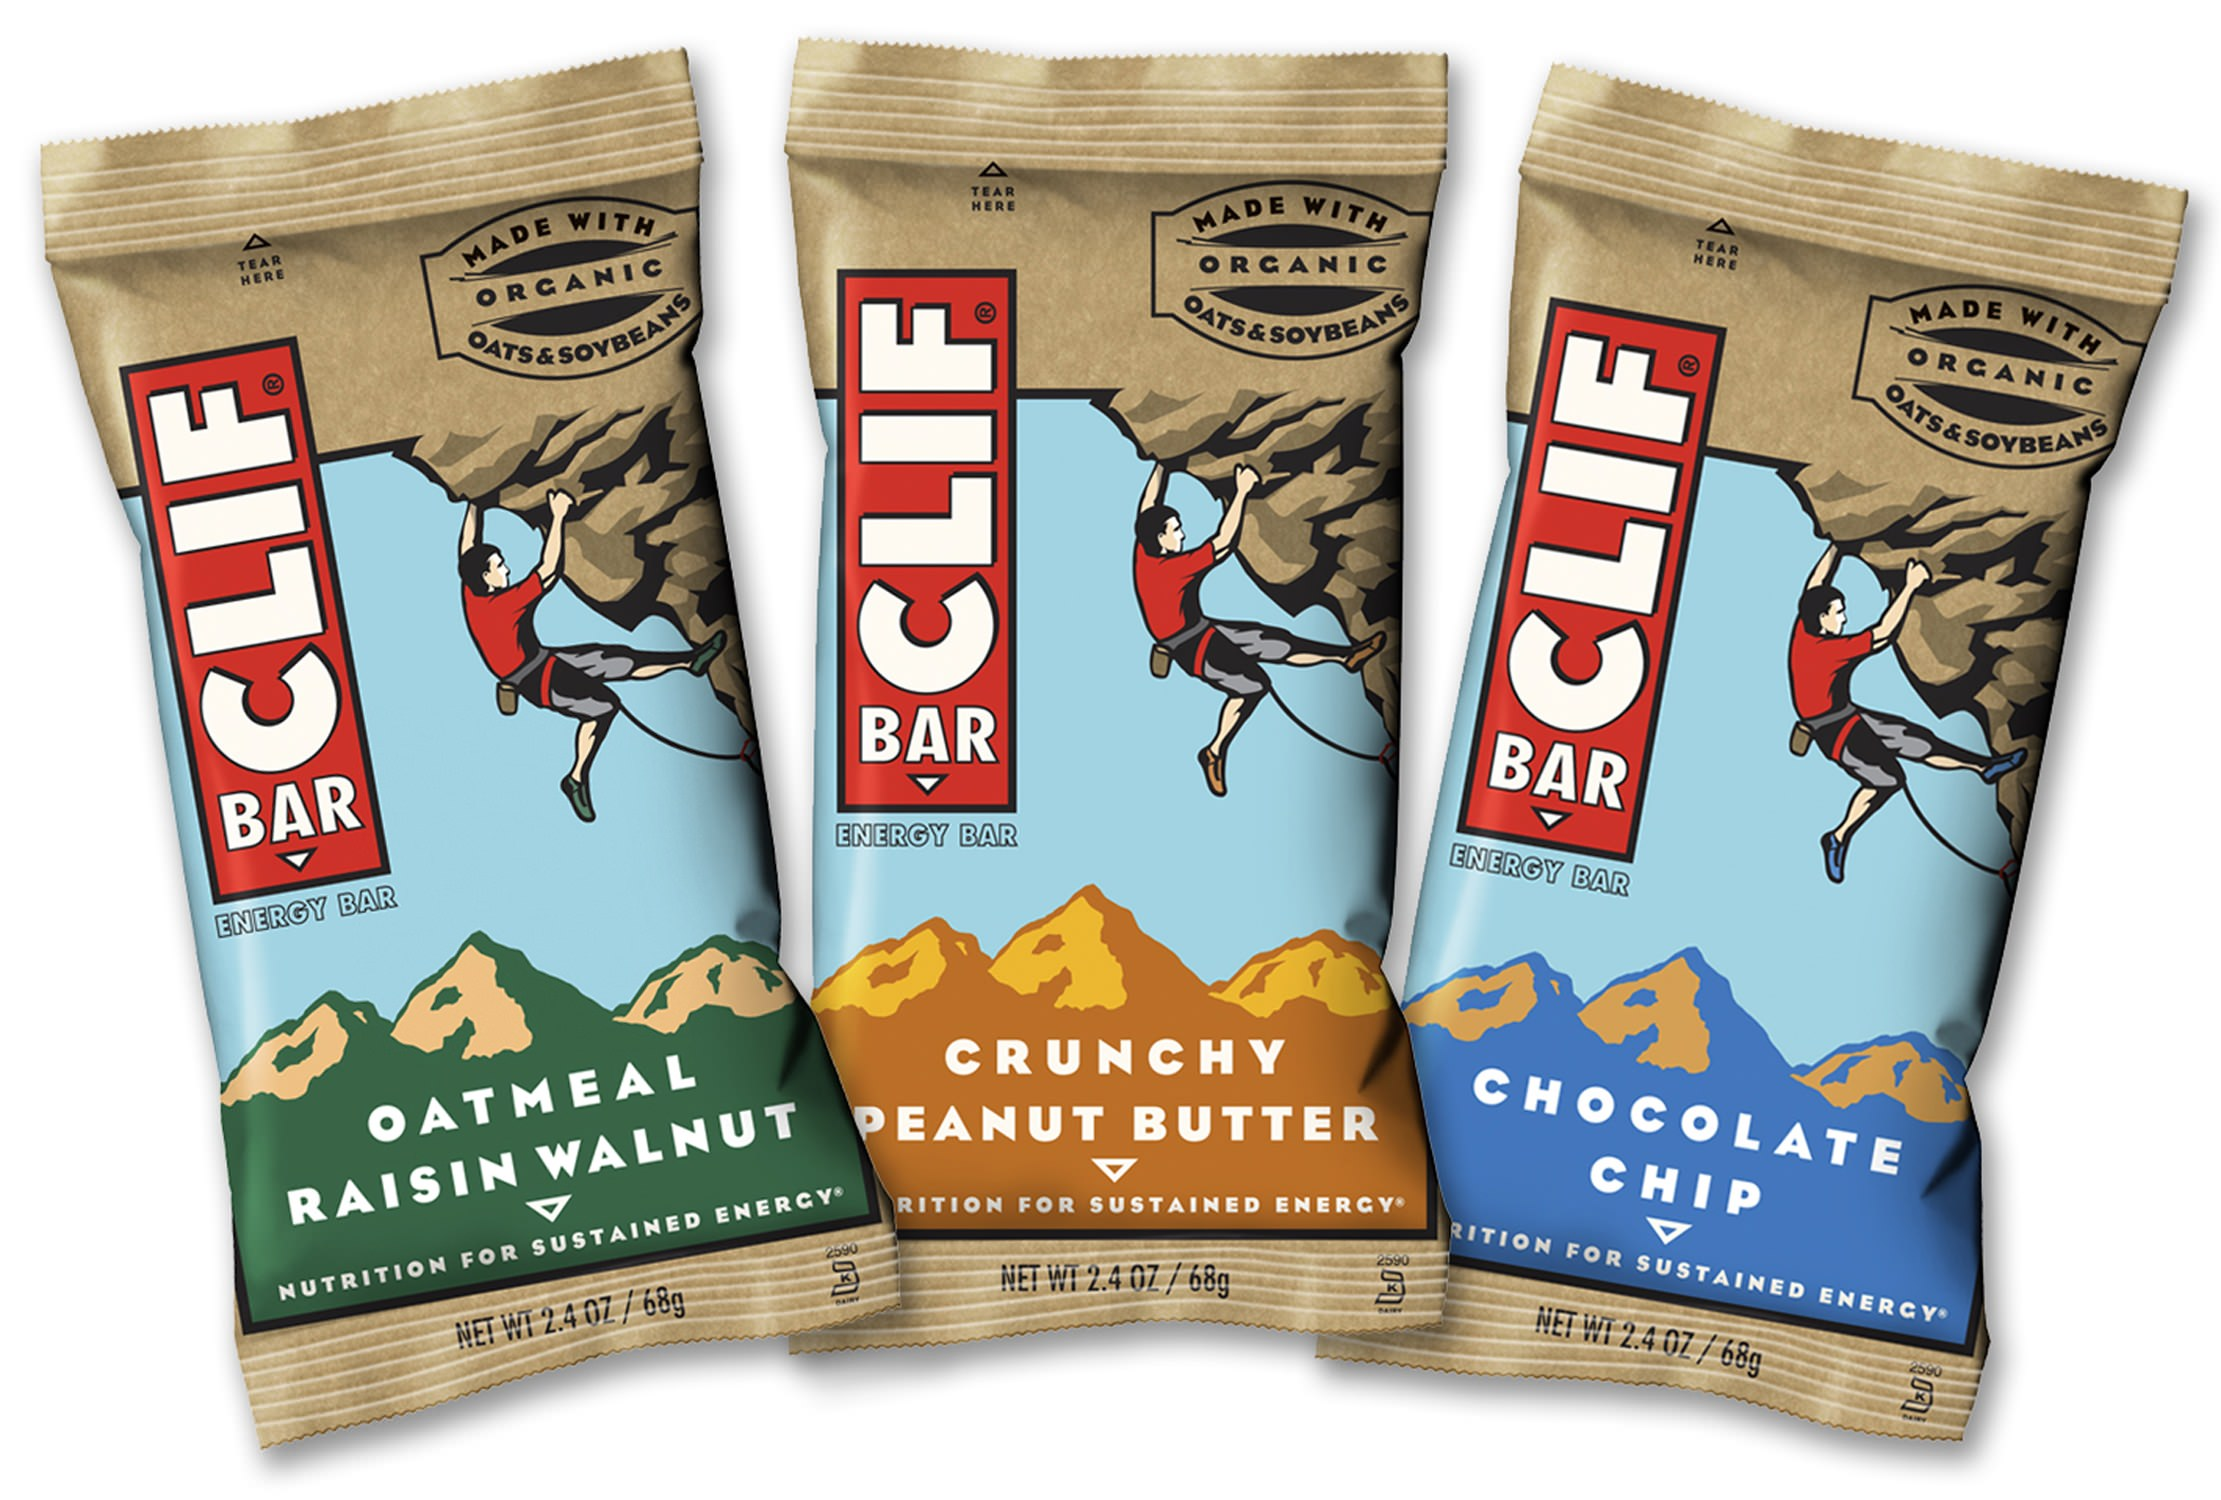 The Truth About Clif Bar The Sustainable Investor